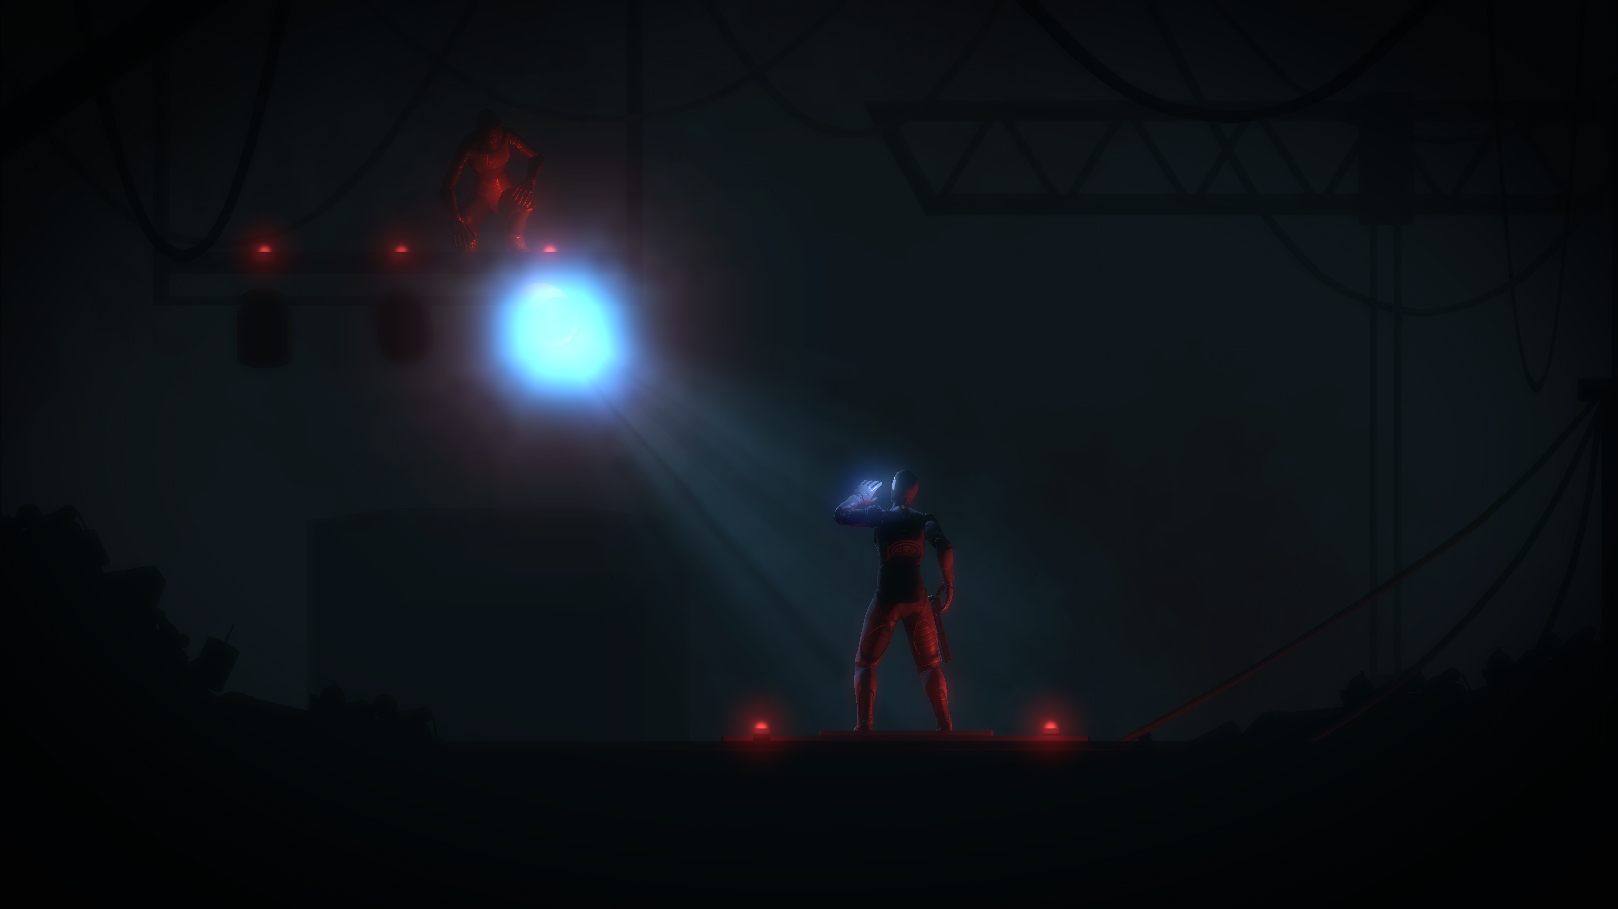 Bleak sci-fi adventure The Fall is free on the Epic Games Store right now